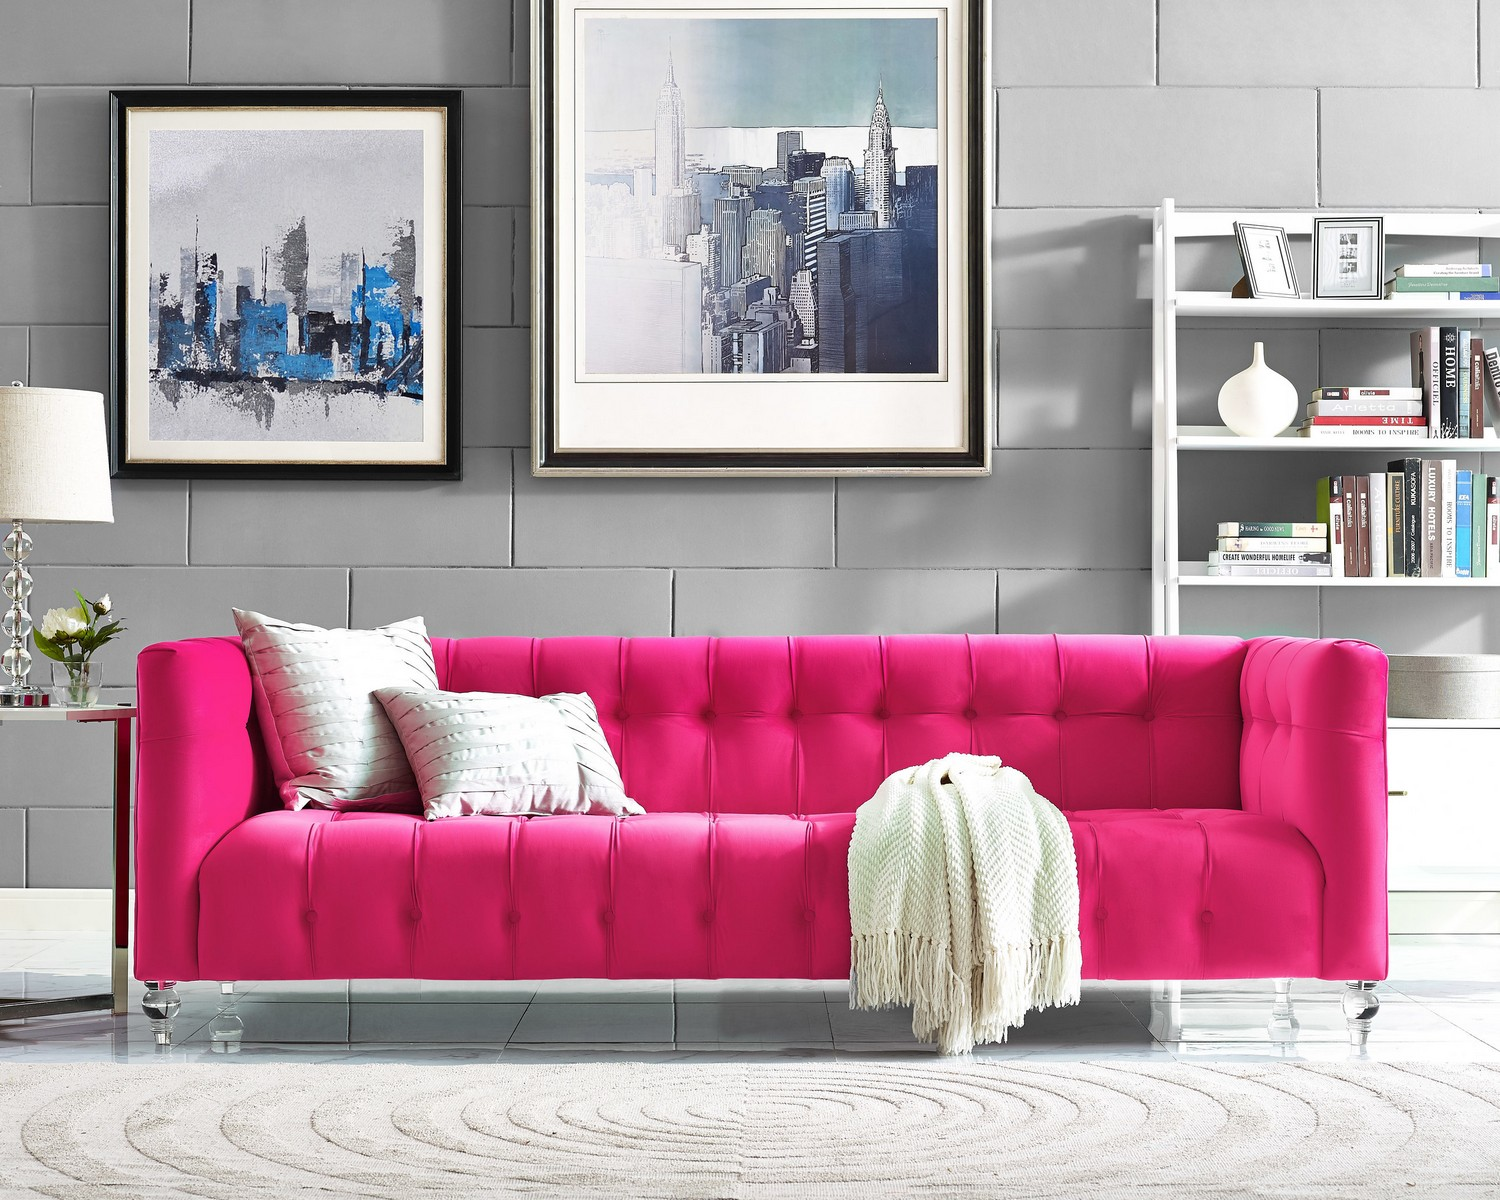 Tov Furniture Bea Pink Velvet Sofa S110 At Homelement Com